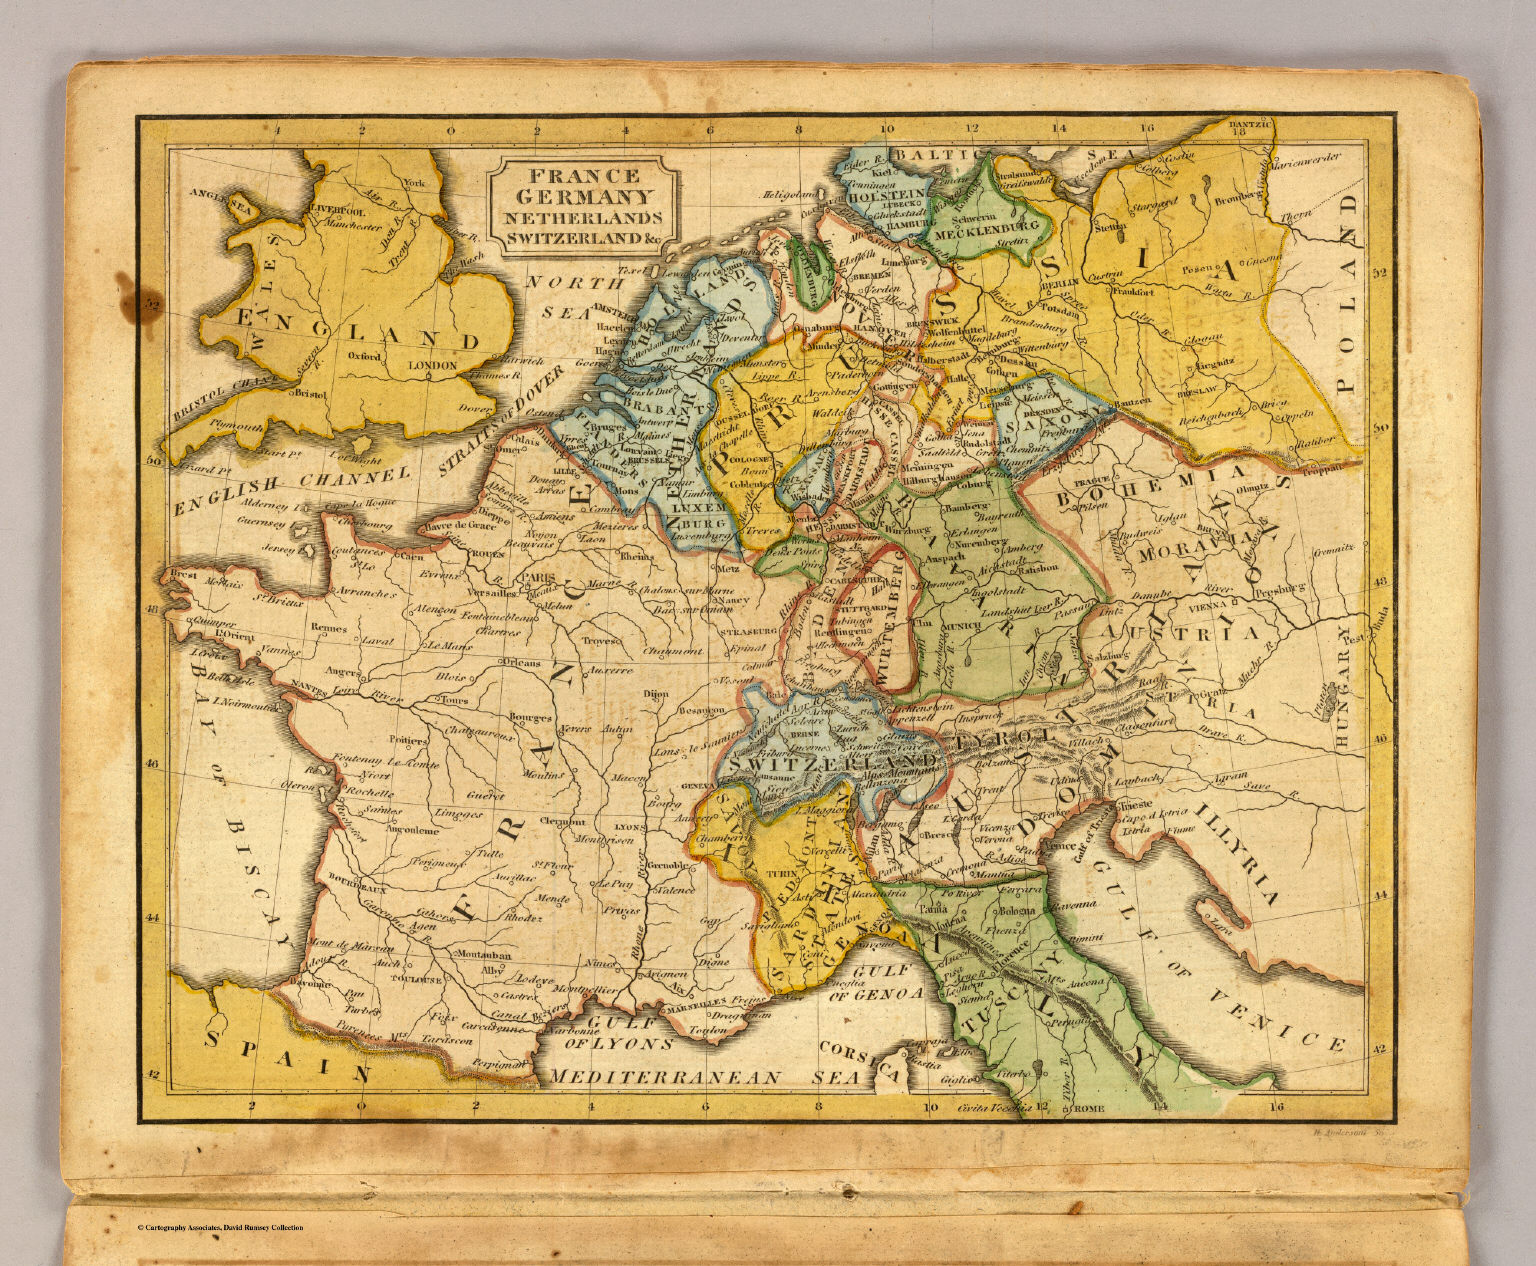 Map Of France Germany.France Germany Netherlands Switzerland C David Rumsey